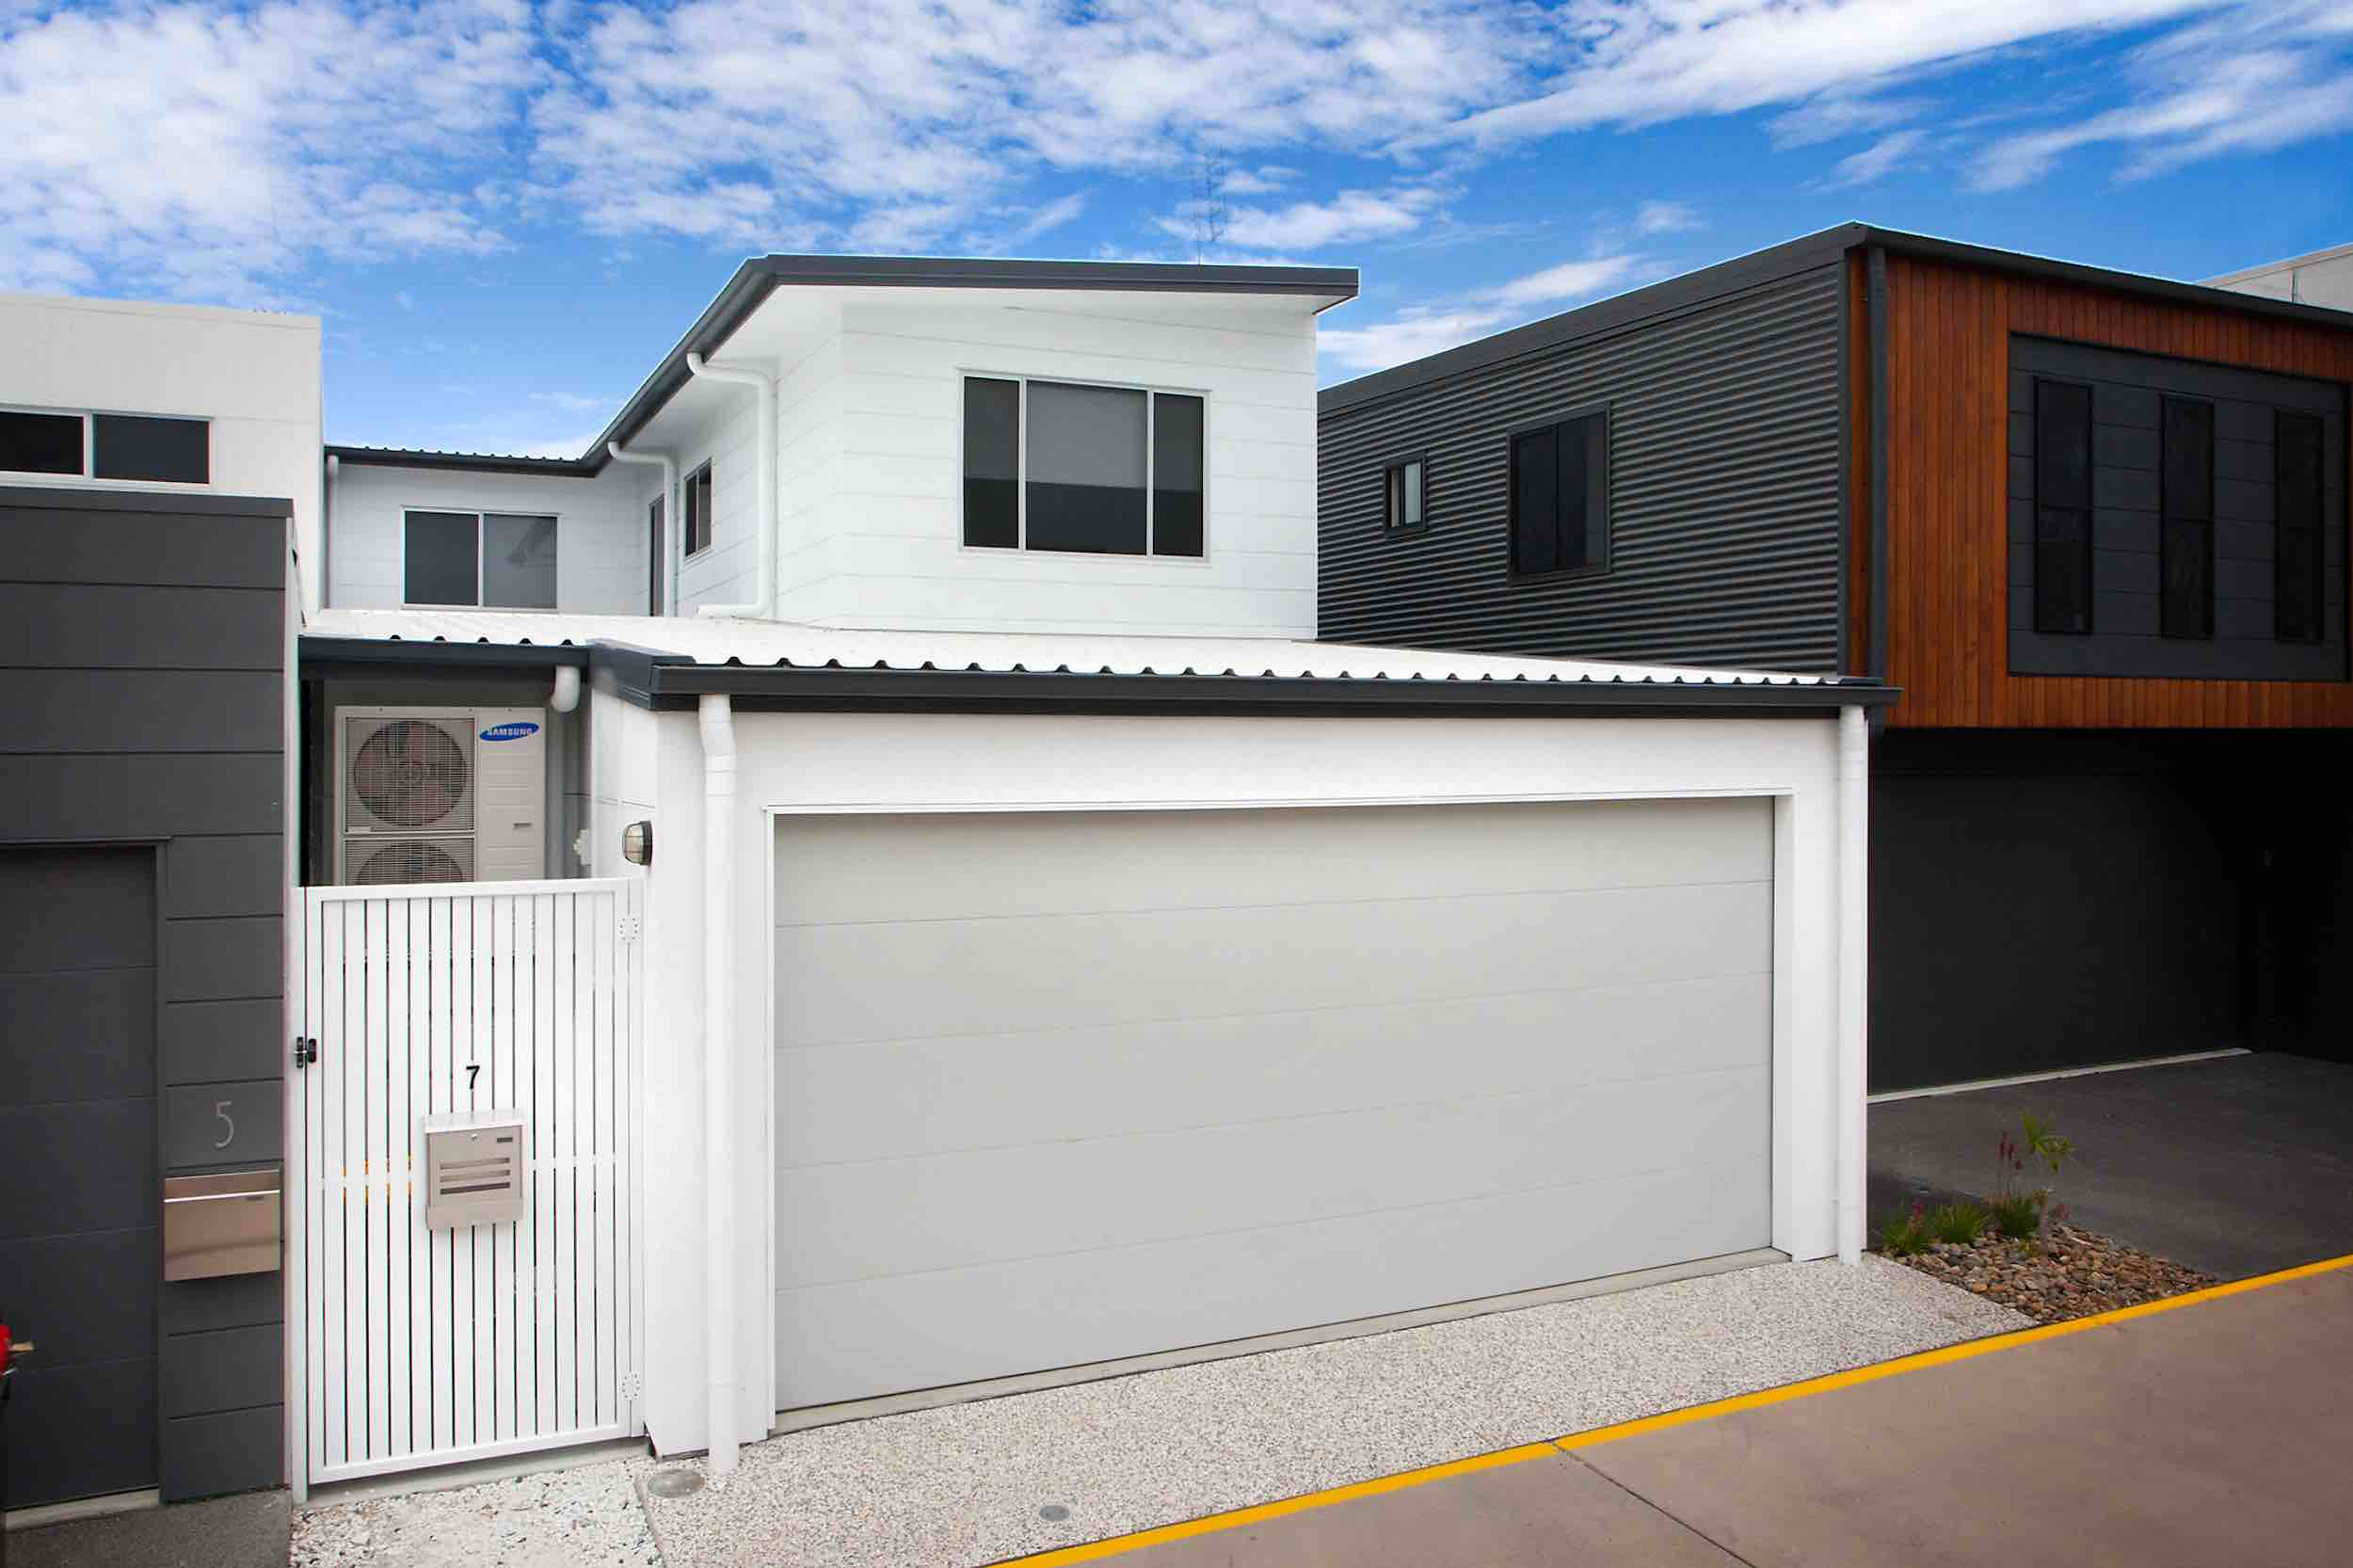 Small lot house design by Principal Plans garage to laneway